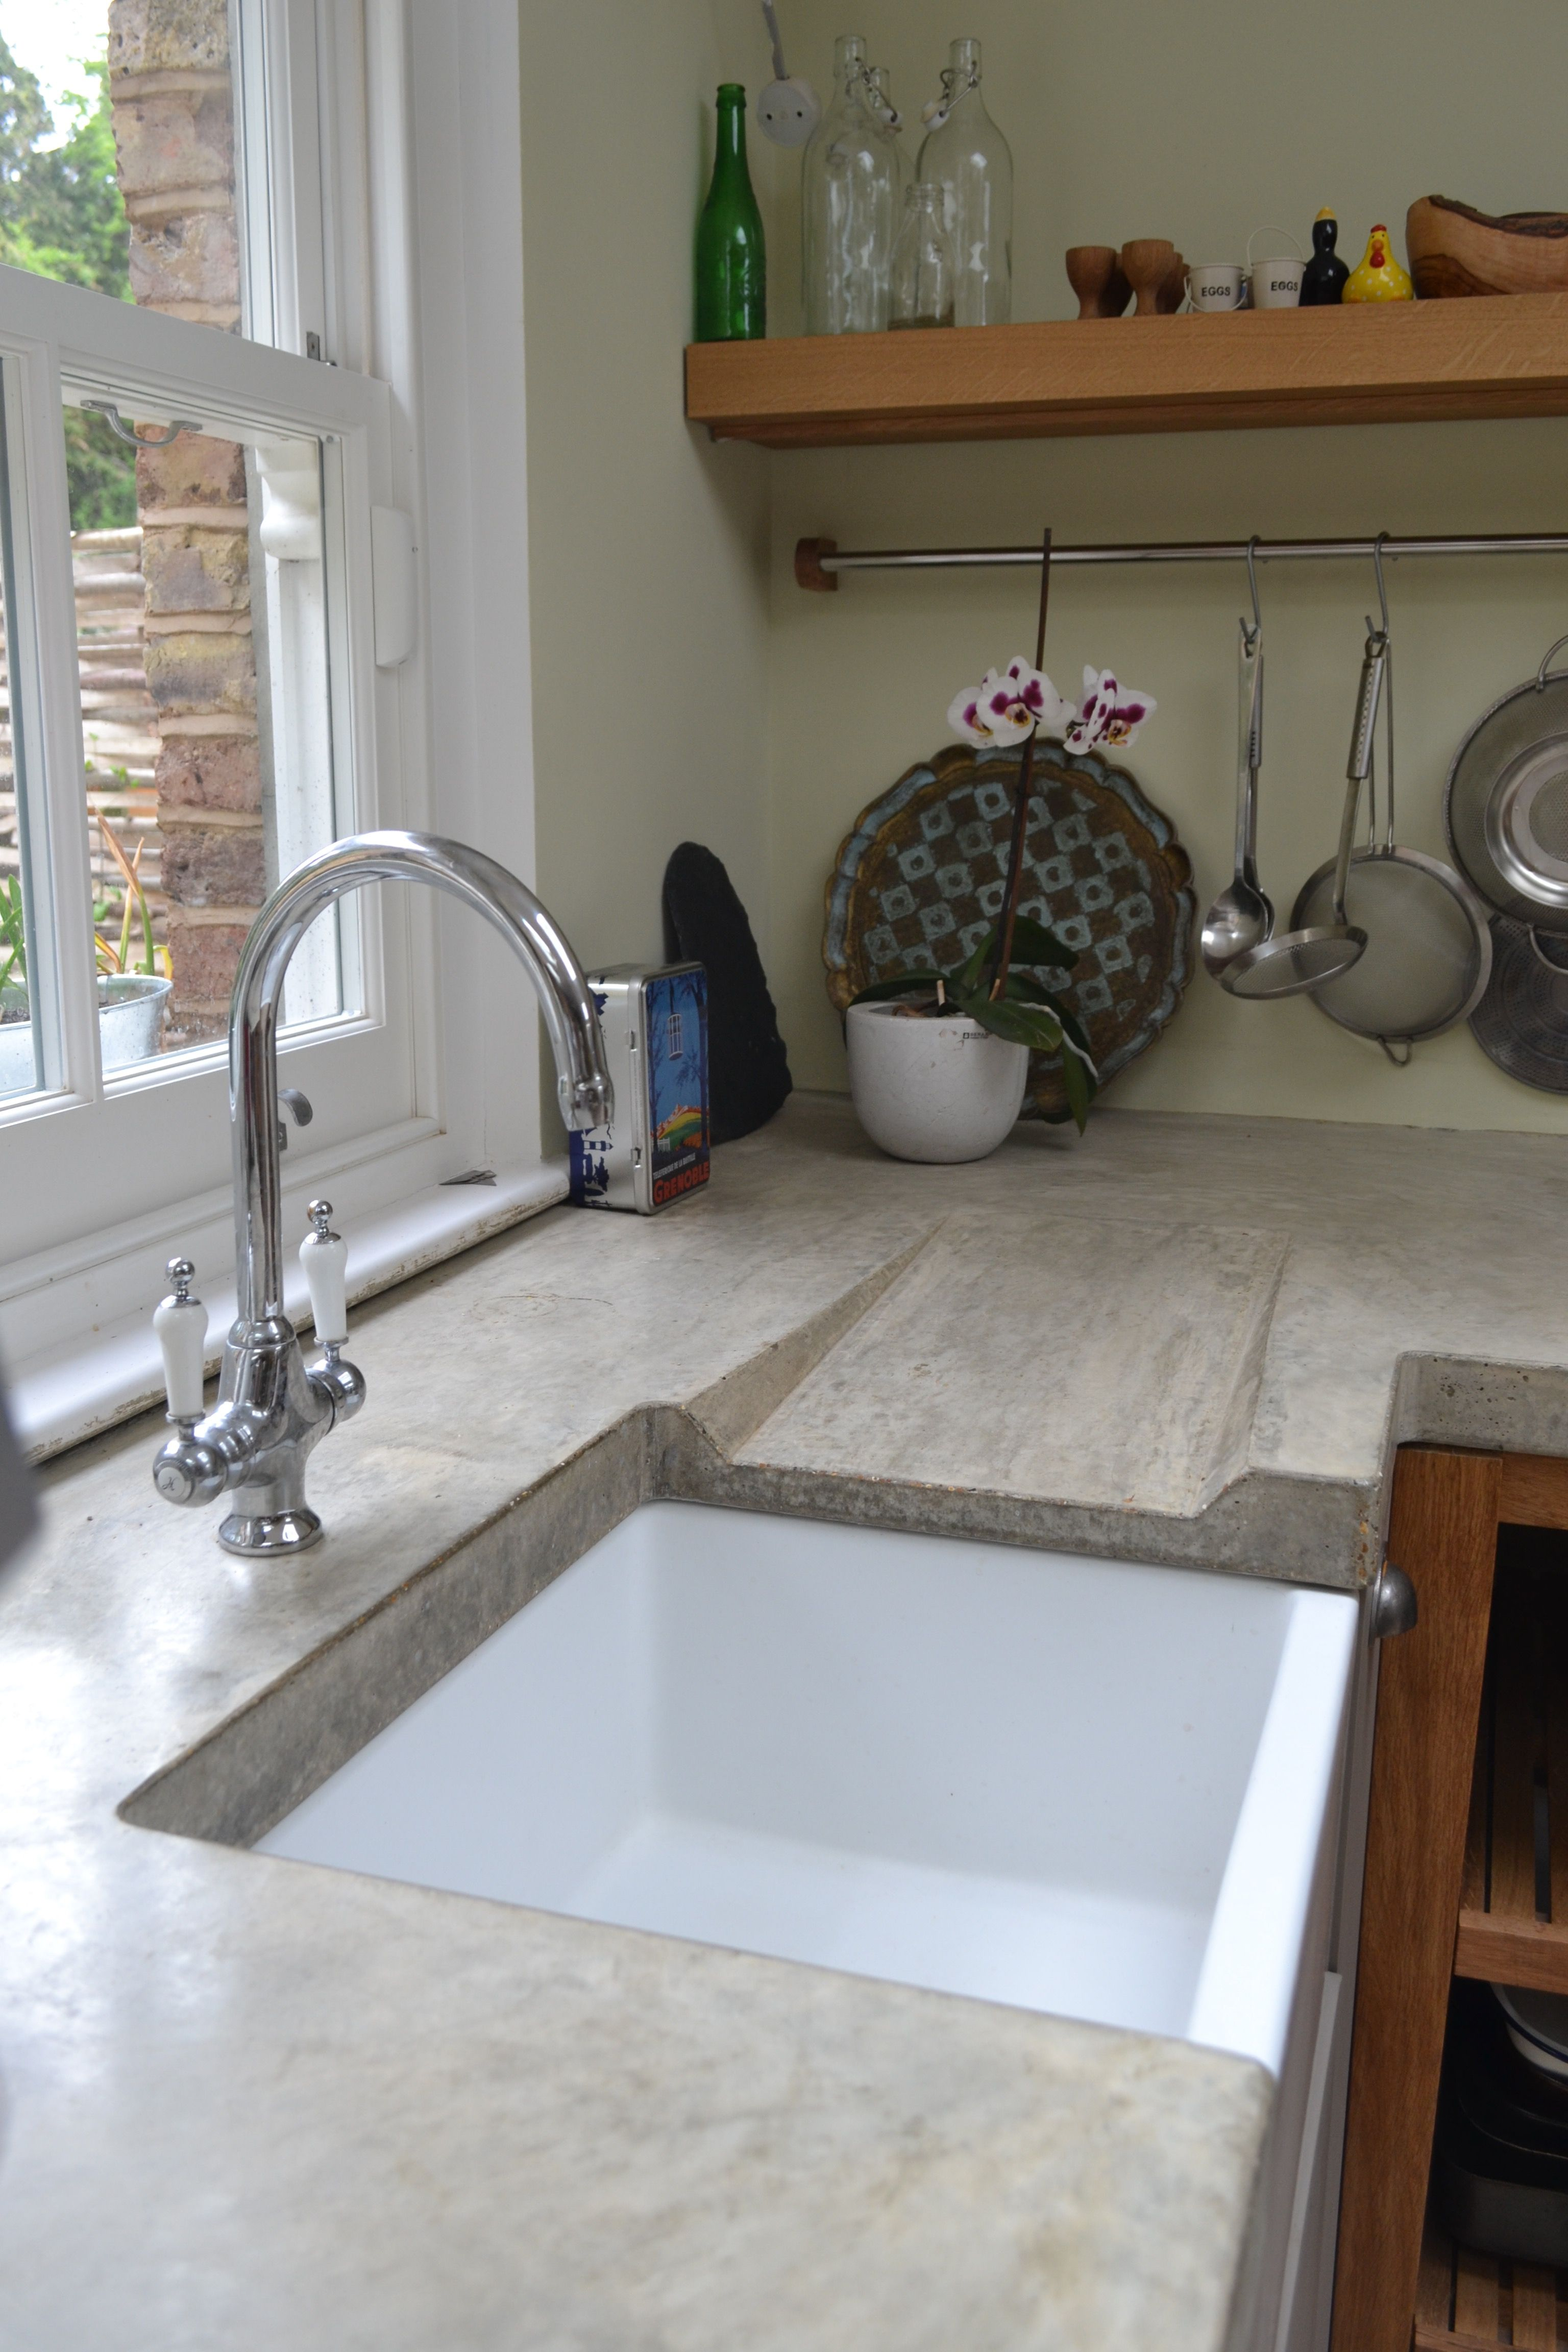 Polished concrete worktop with sloped drainer www.arnoldskitchens.co ...